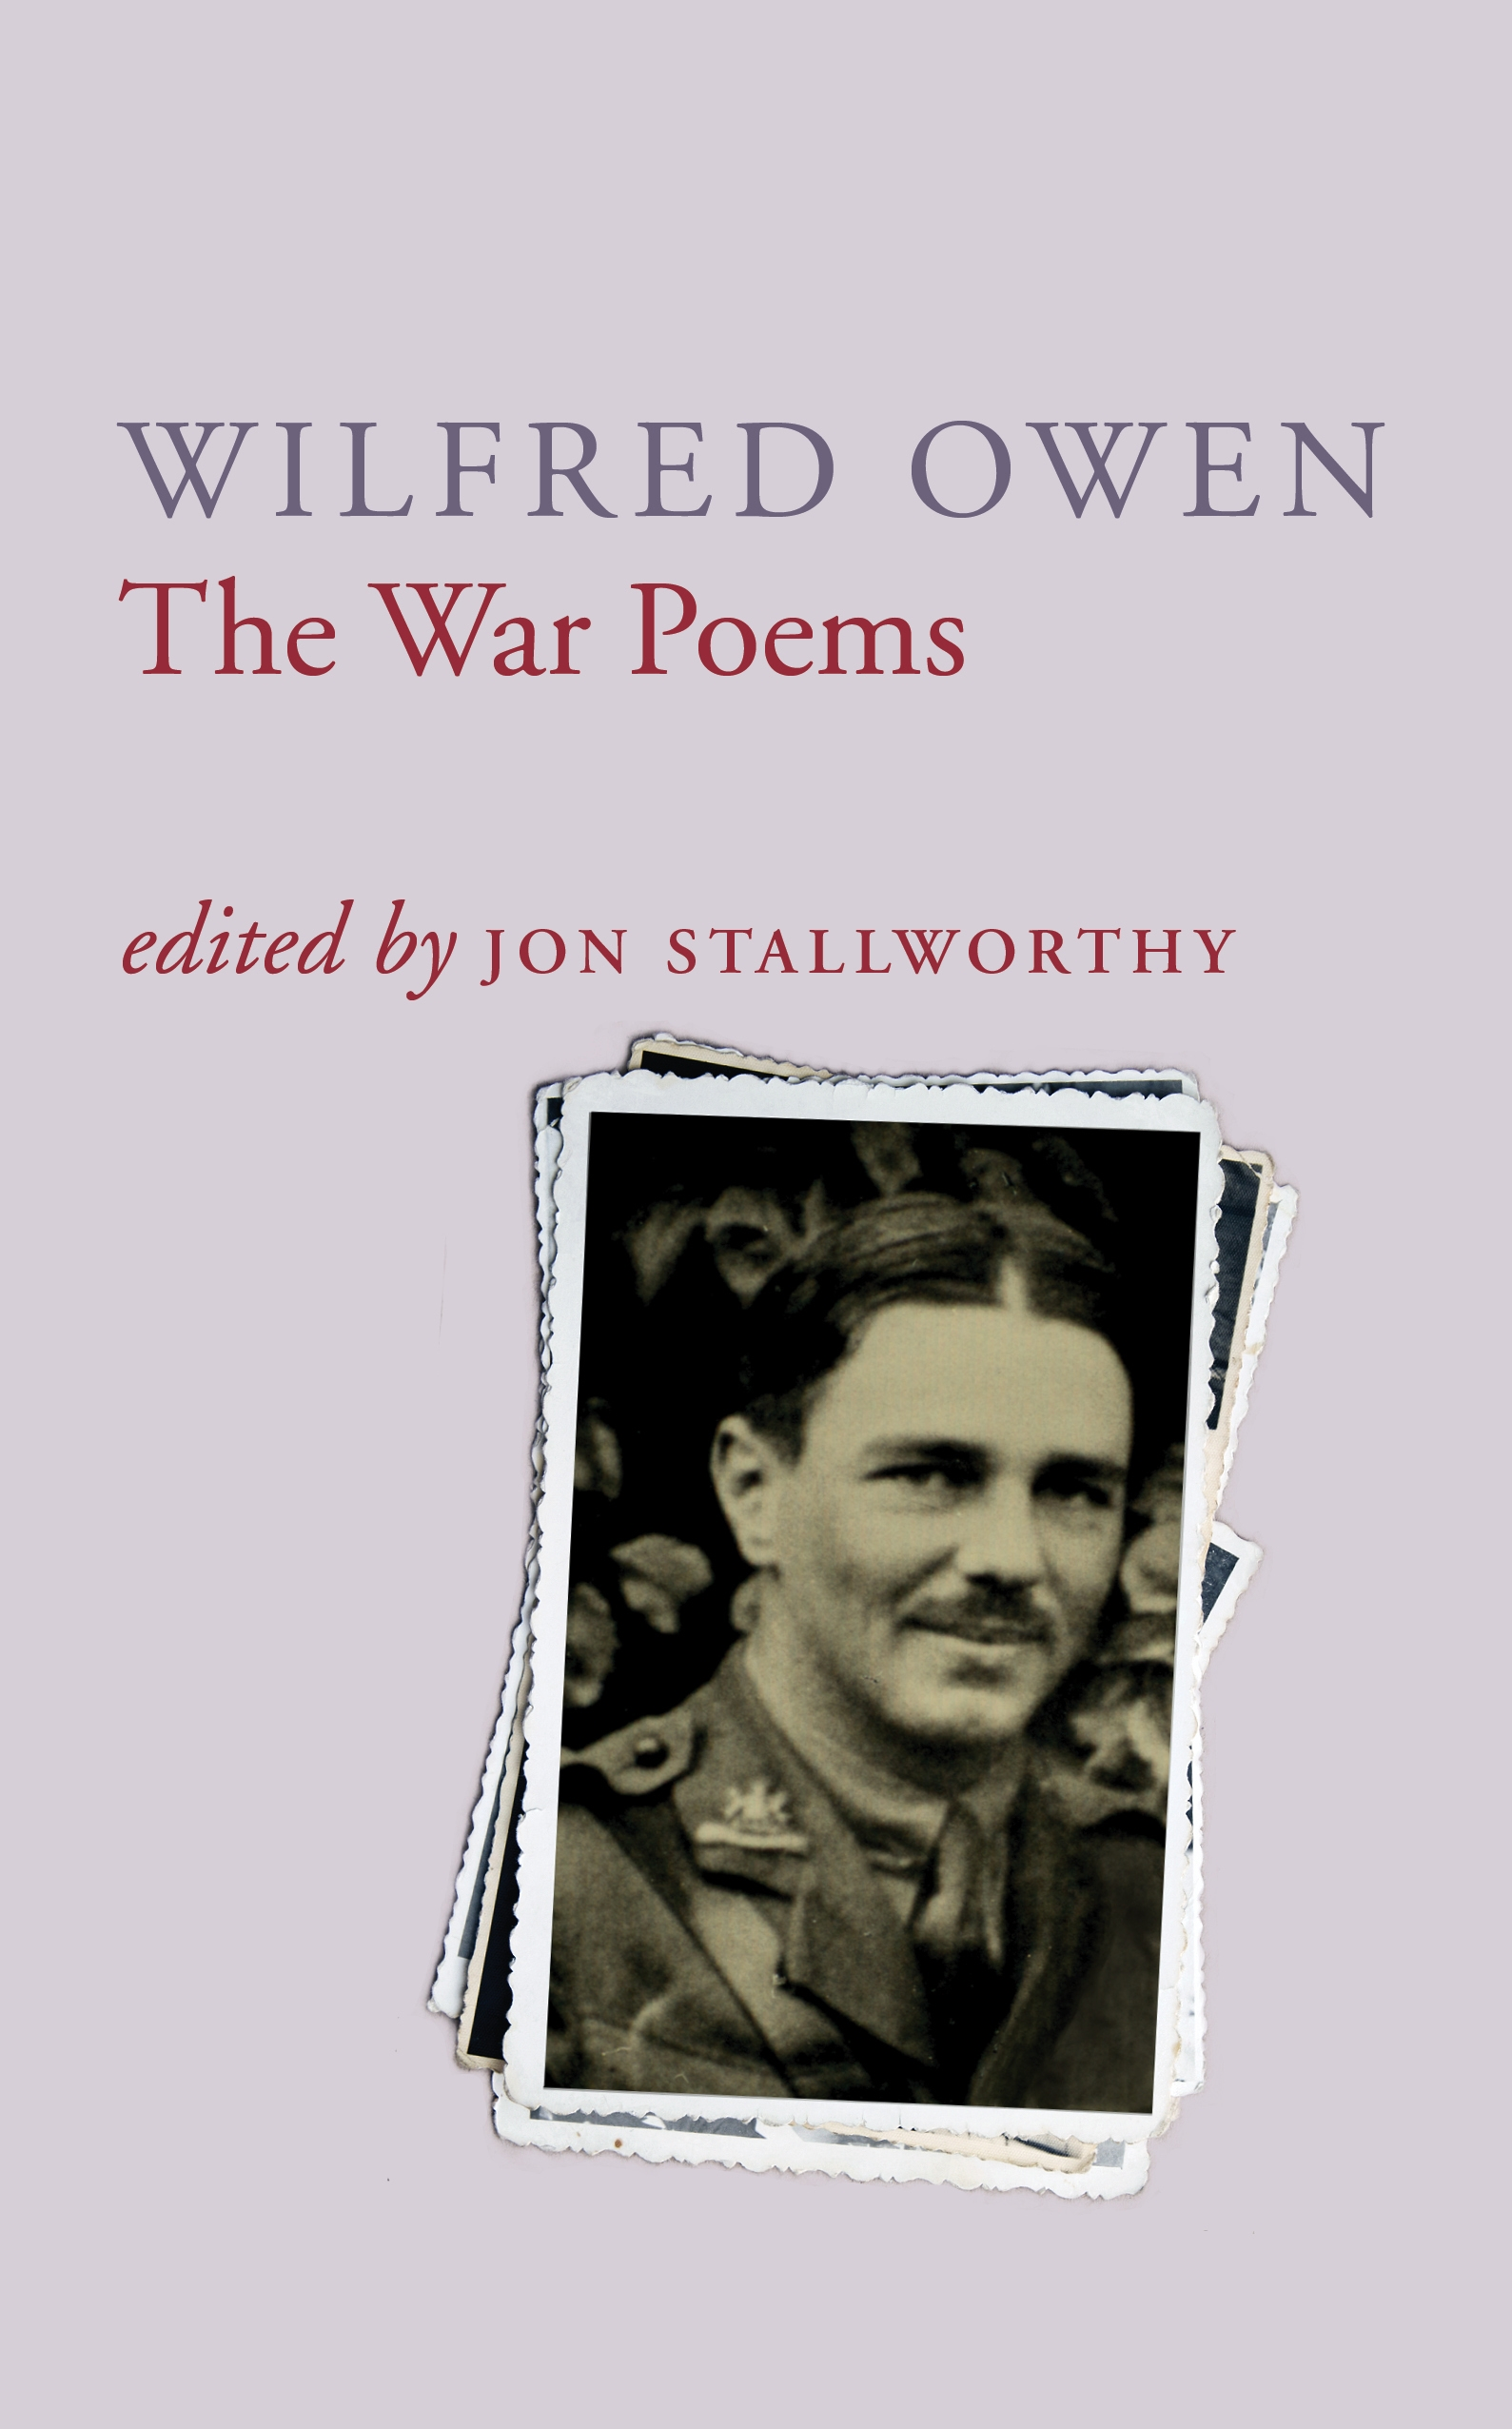 wilfred owen s war poems The poems that made wilfred owen famous were mostly published after his death in action a week before the end of the first world war powerfully influenced by keats and shelley, he.